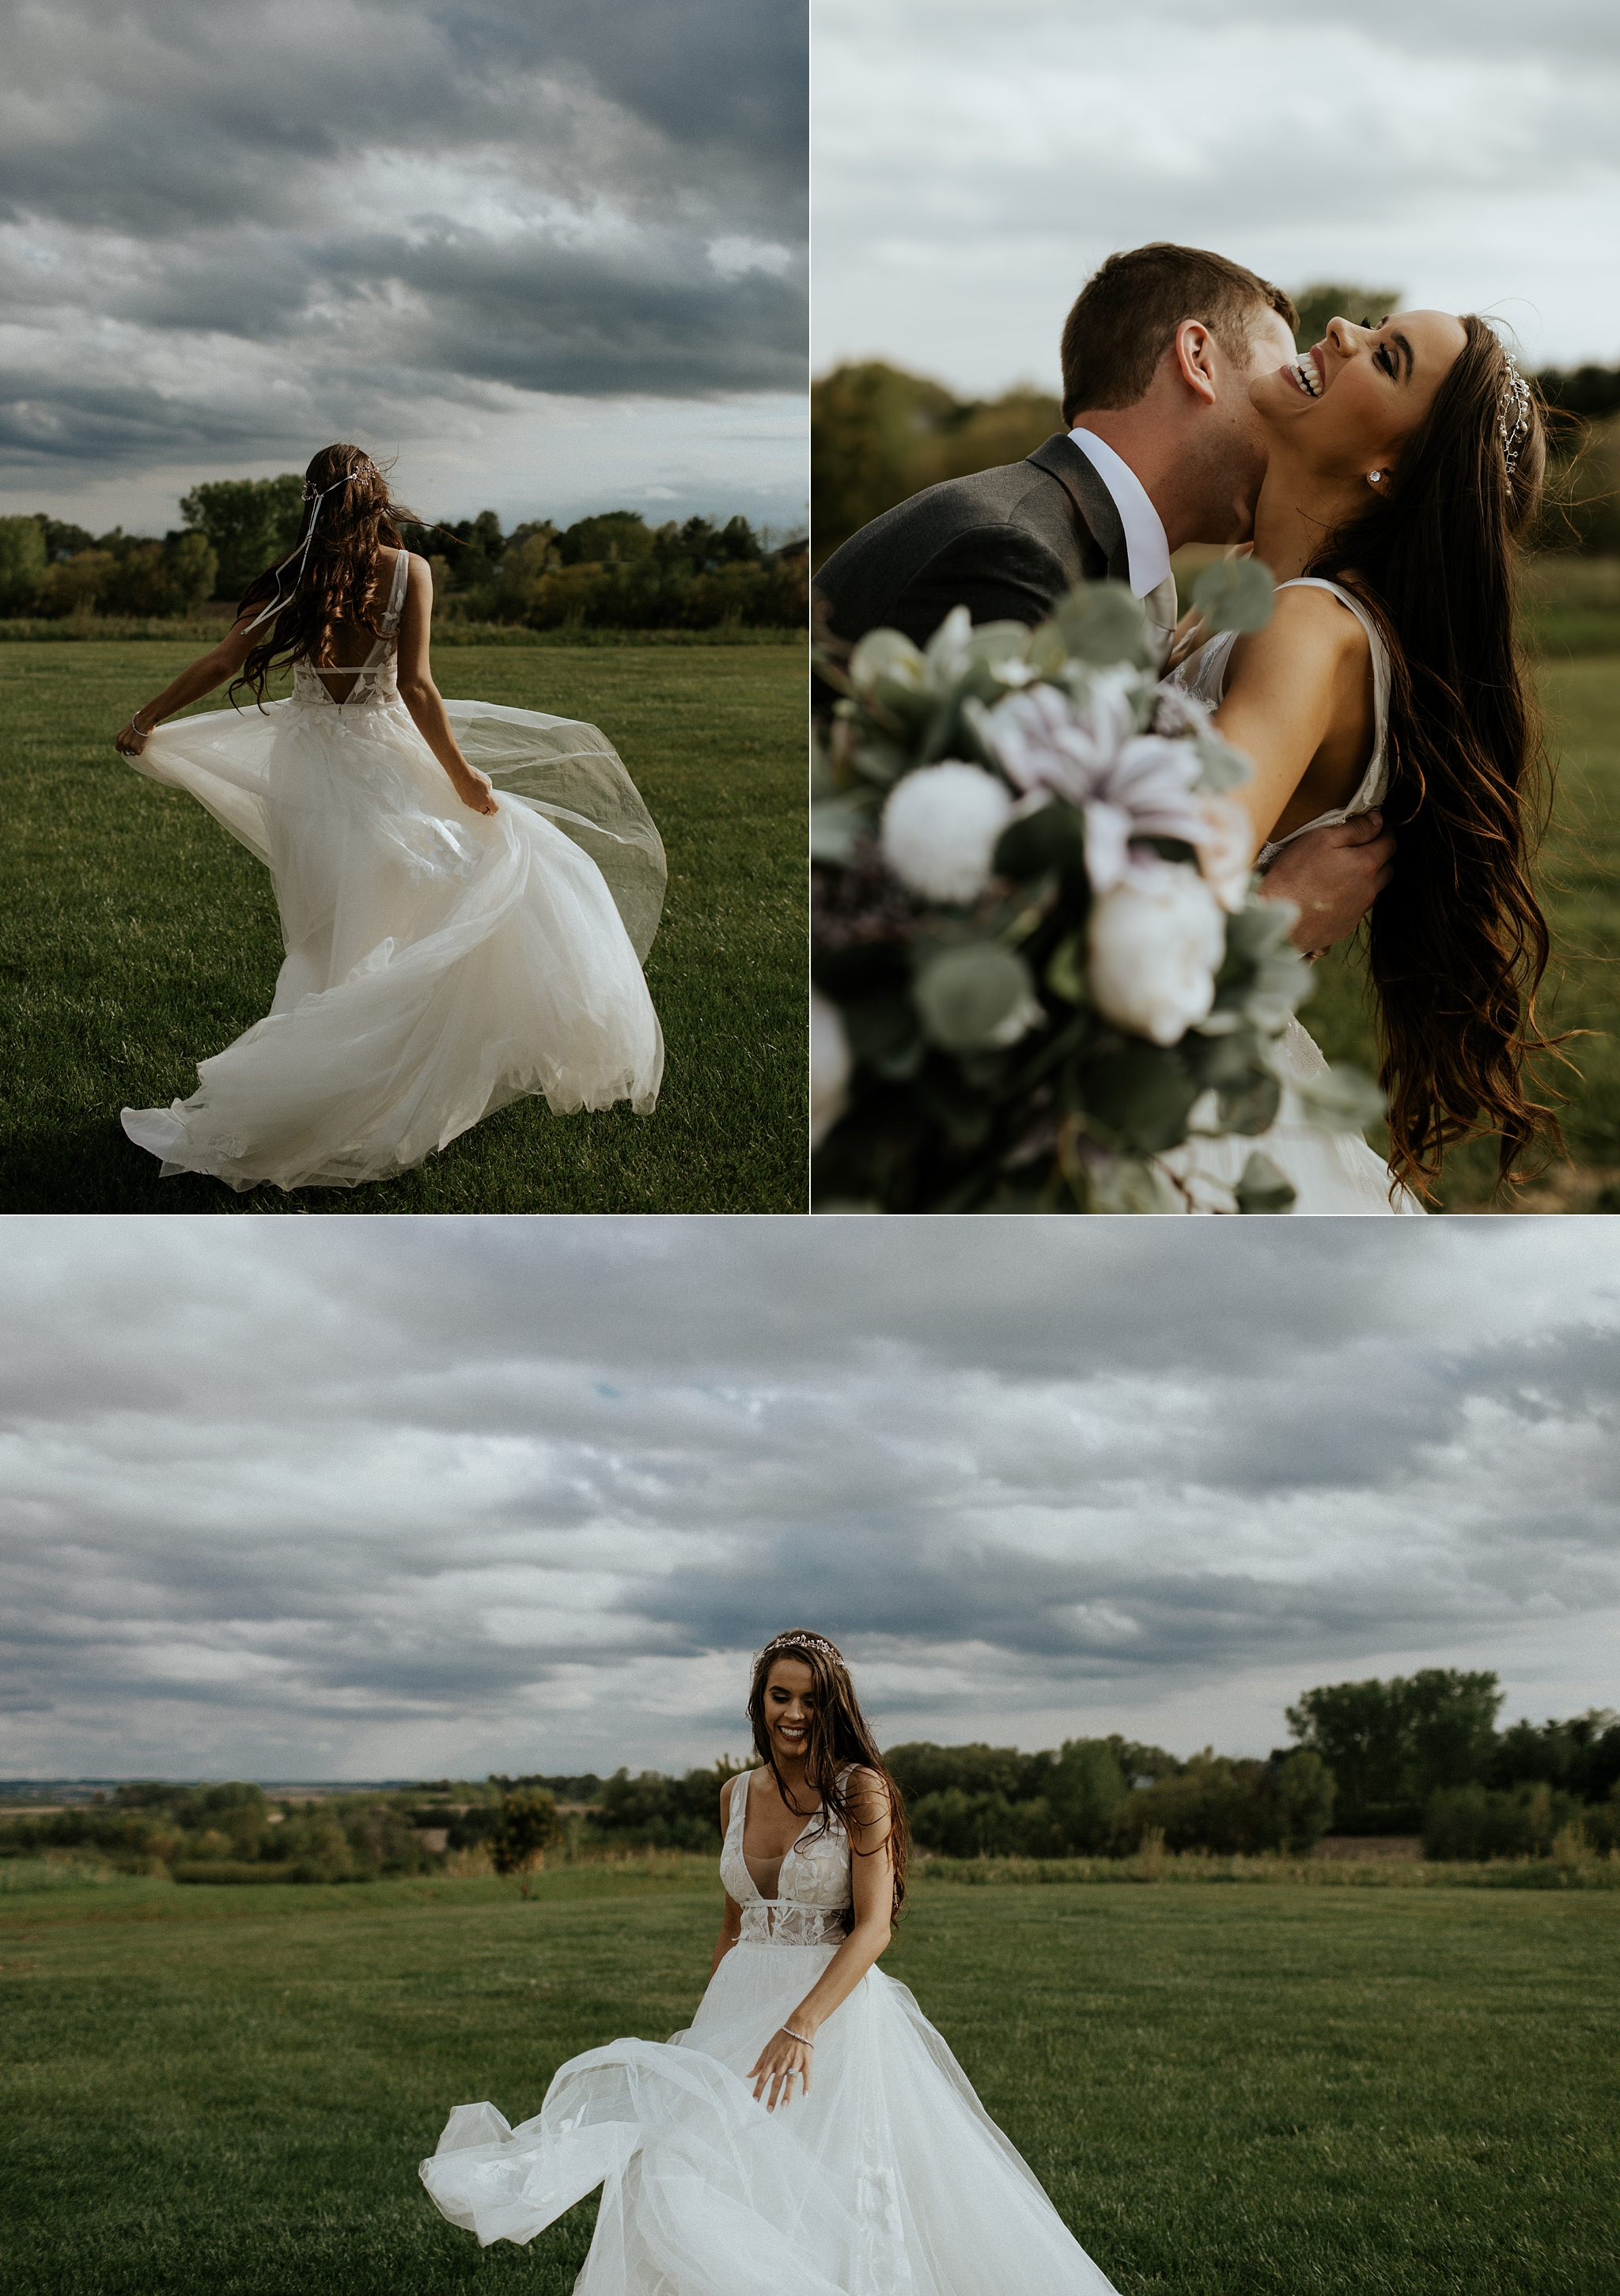 Italian Wedding at Bella Terre Vineyard - Trin Jensen Photography_0020.jpg